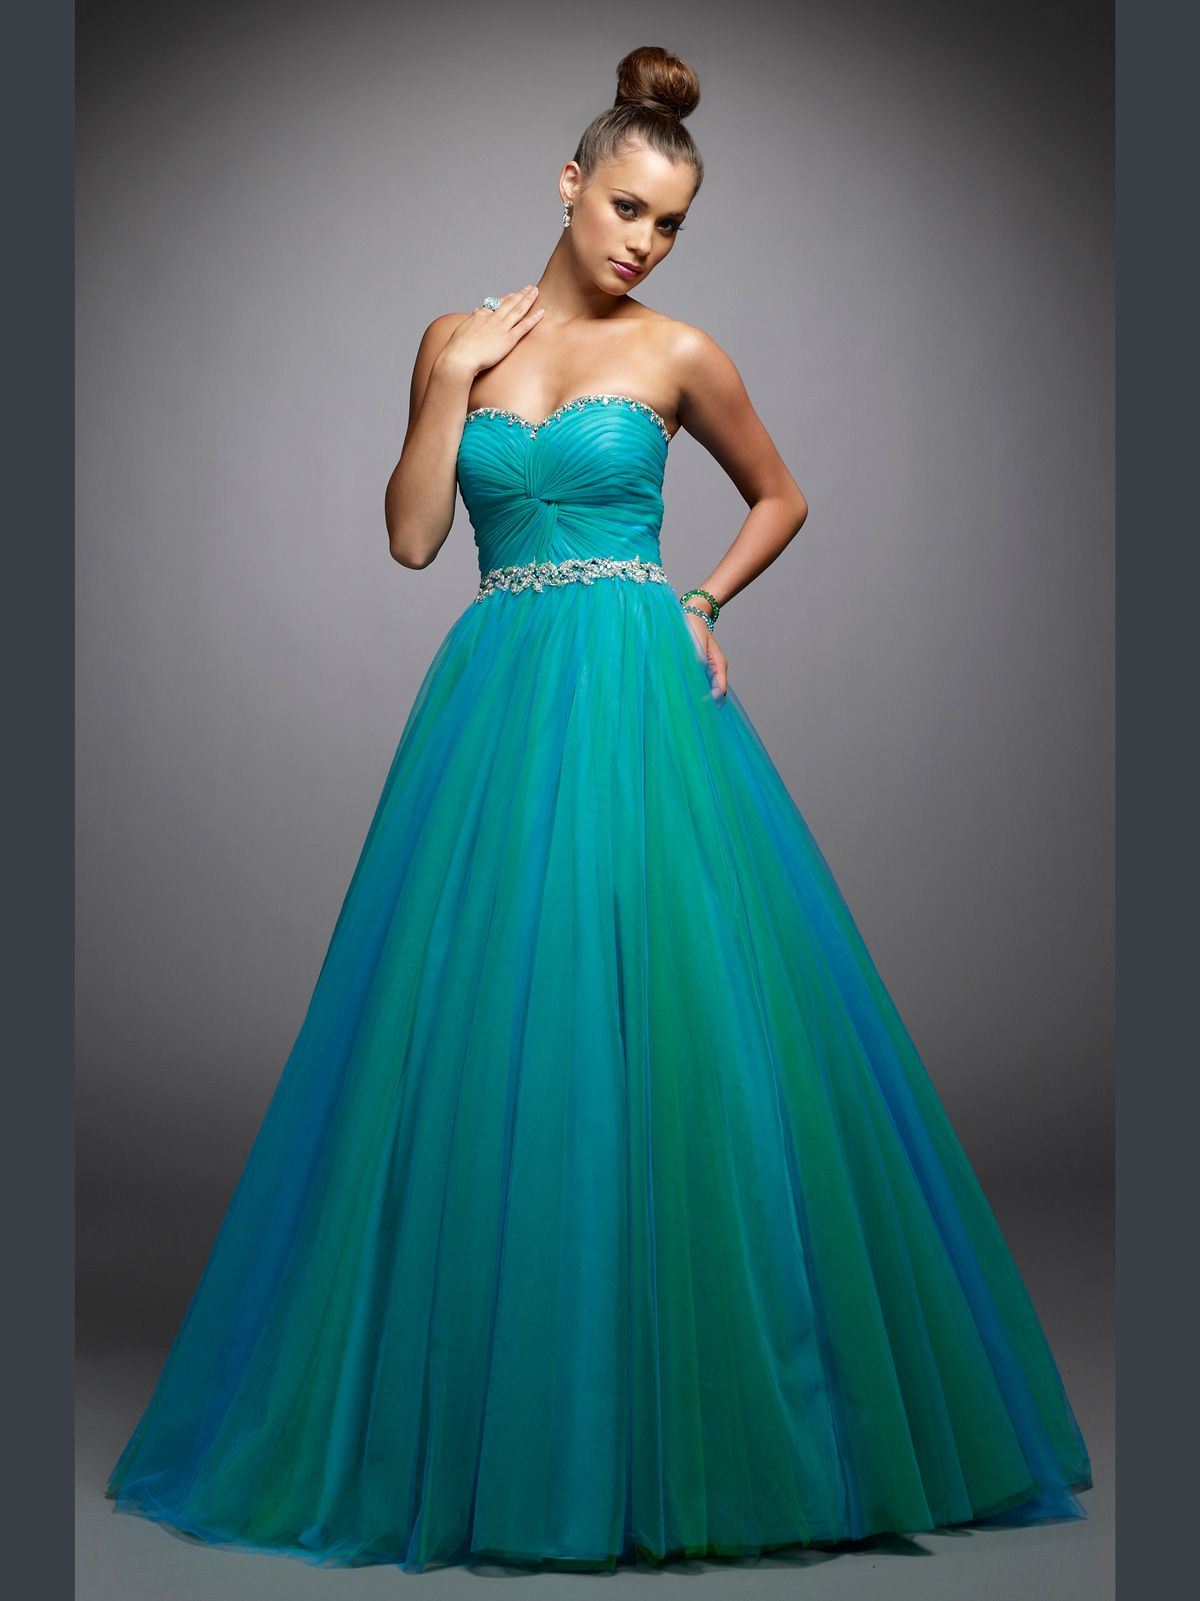 Size turquoisegreen in stockthis tulle ball gown alyce prom